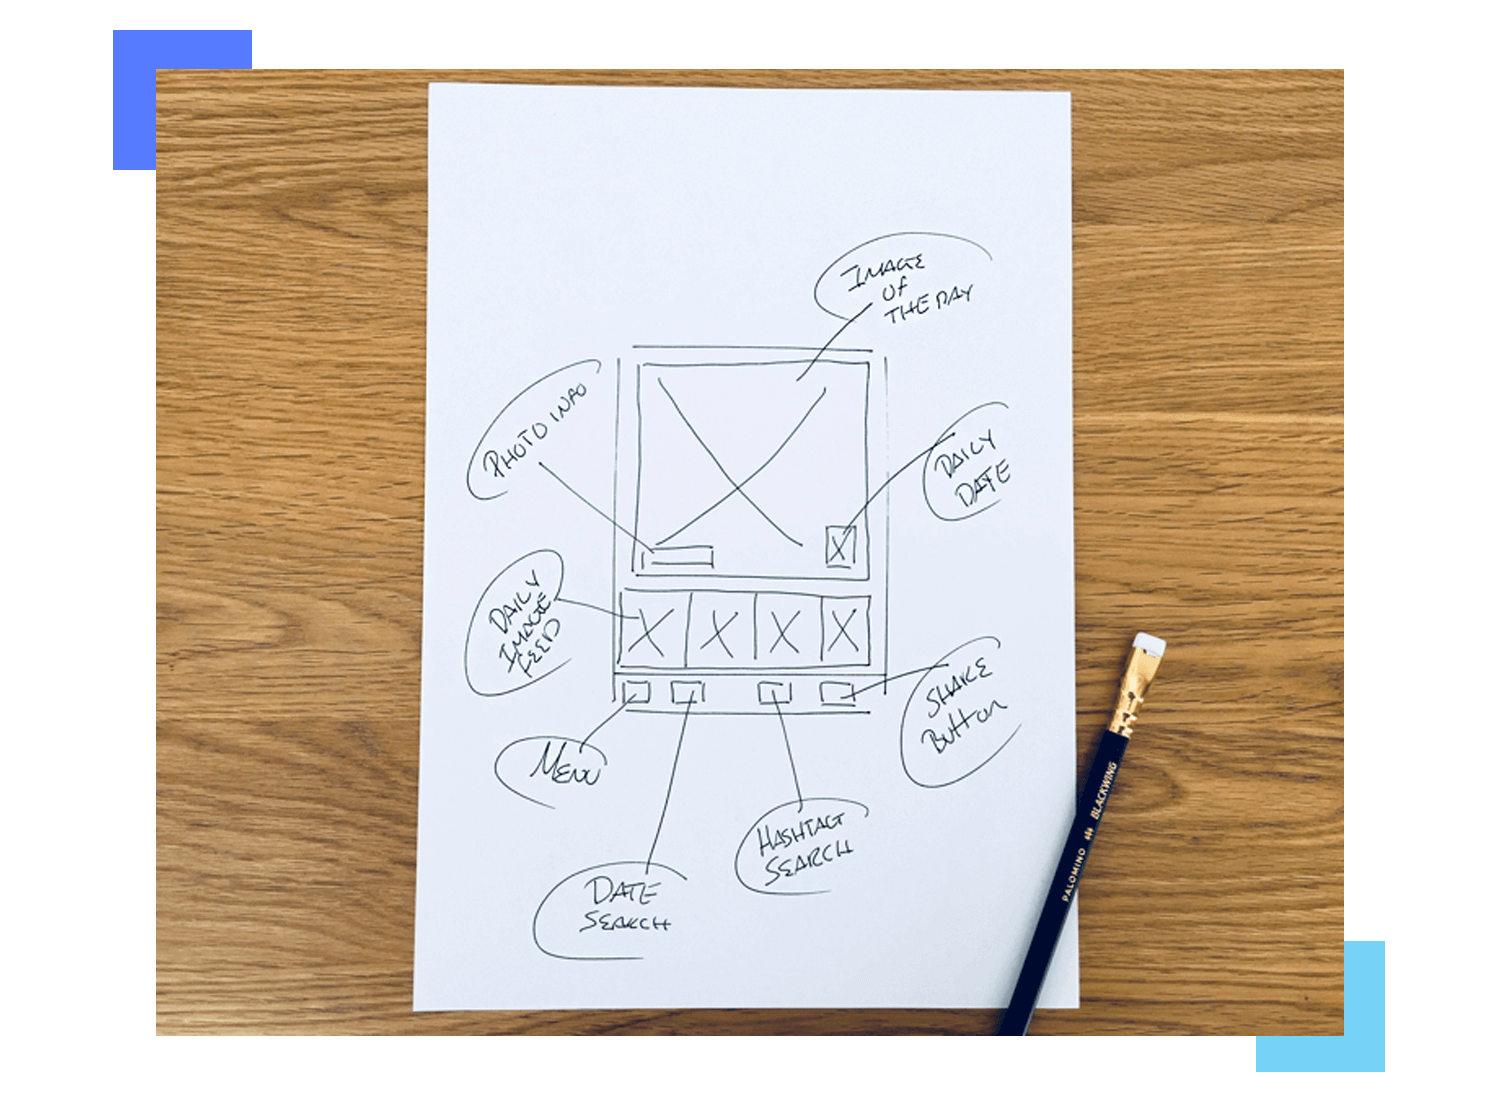 example of web wireframe sketching